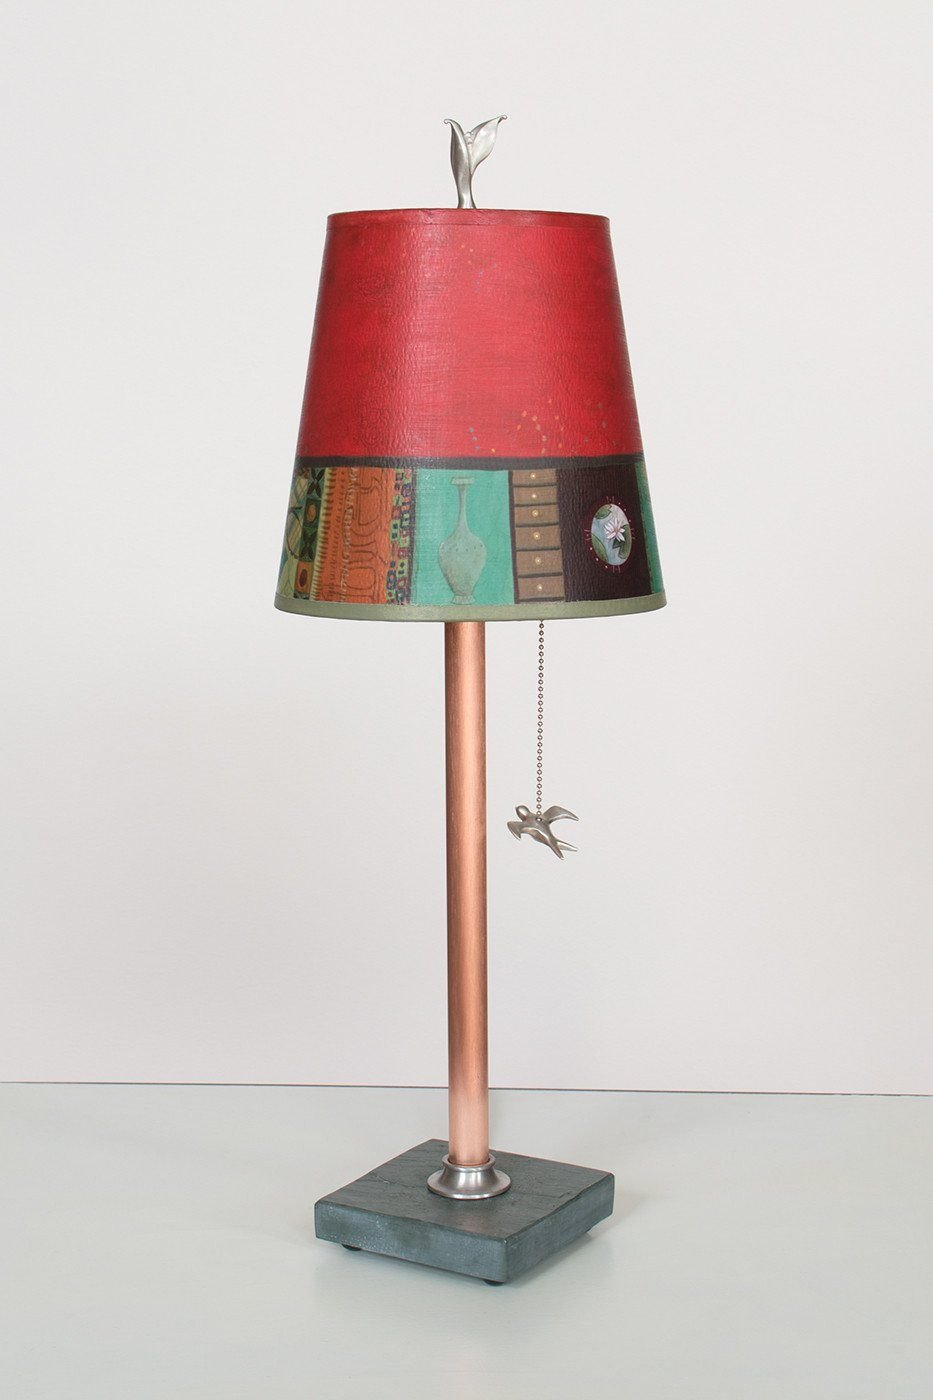 Copper Table Lamp on Vermont Slate Base with Small Drum Shade in Red Match Lit